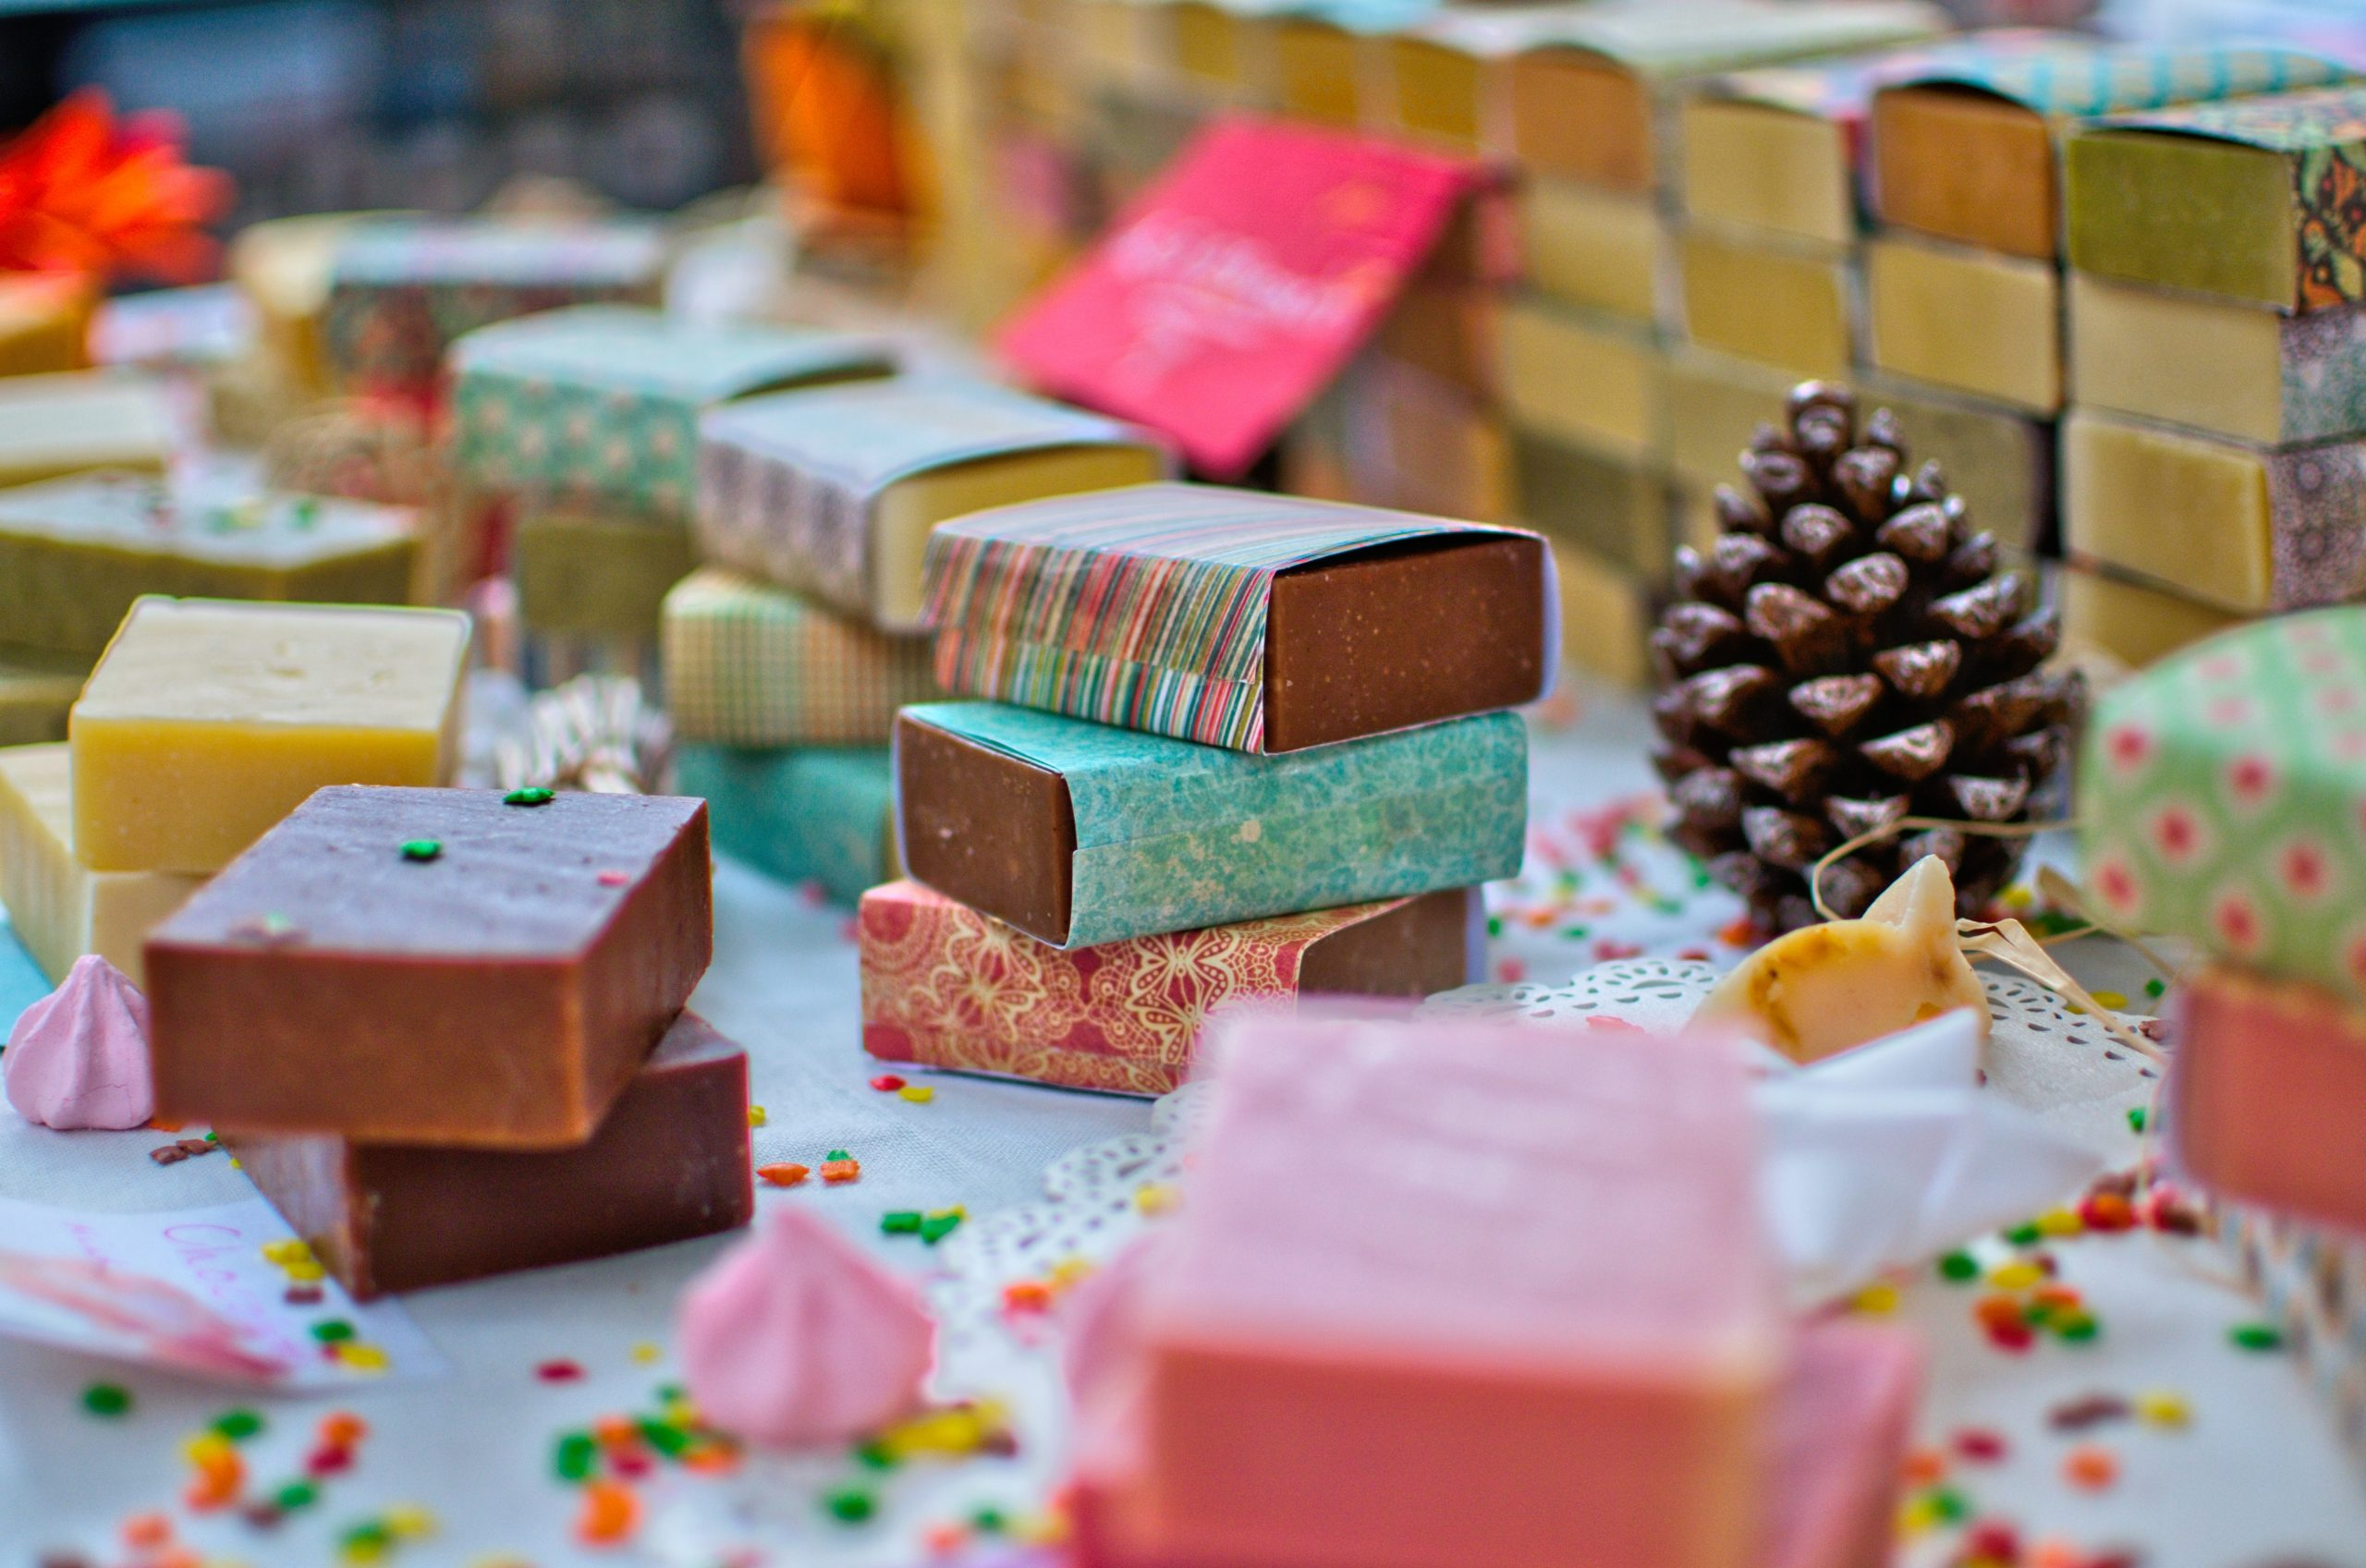 cakes of soap stacked o a table top. different colours. small business start ups